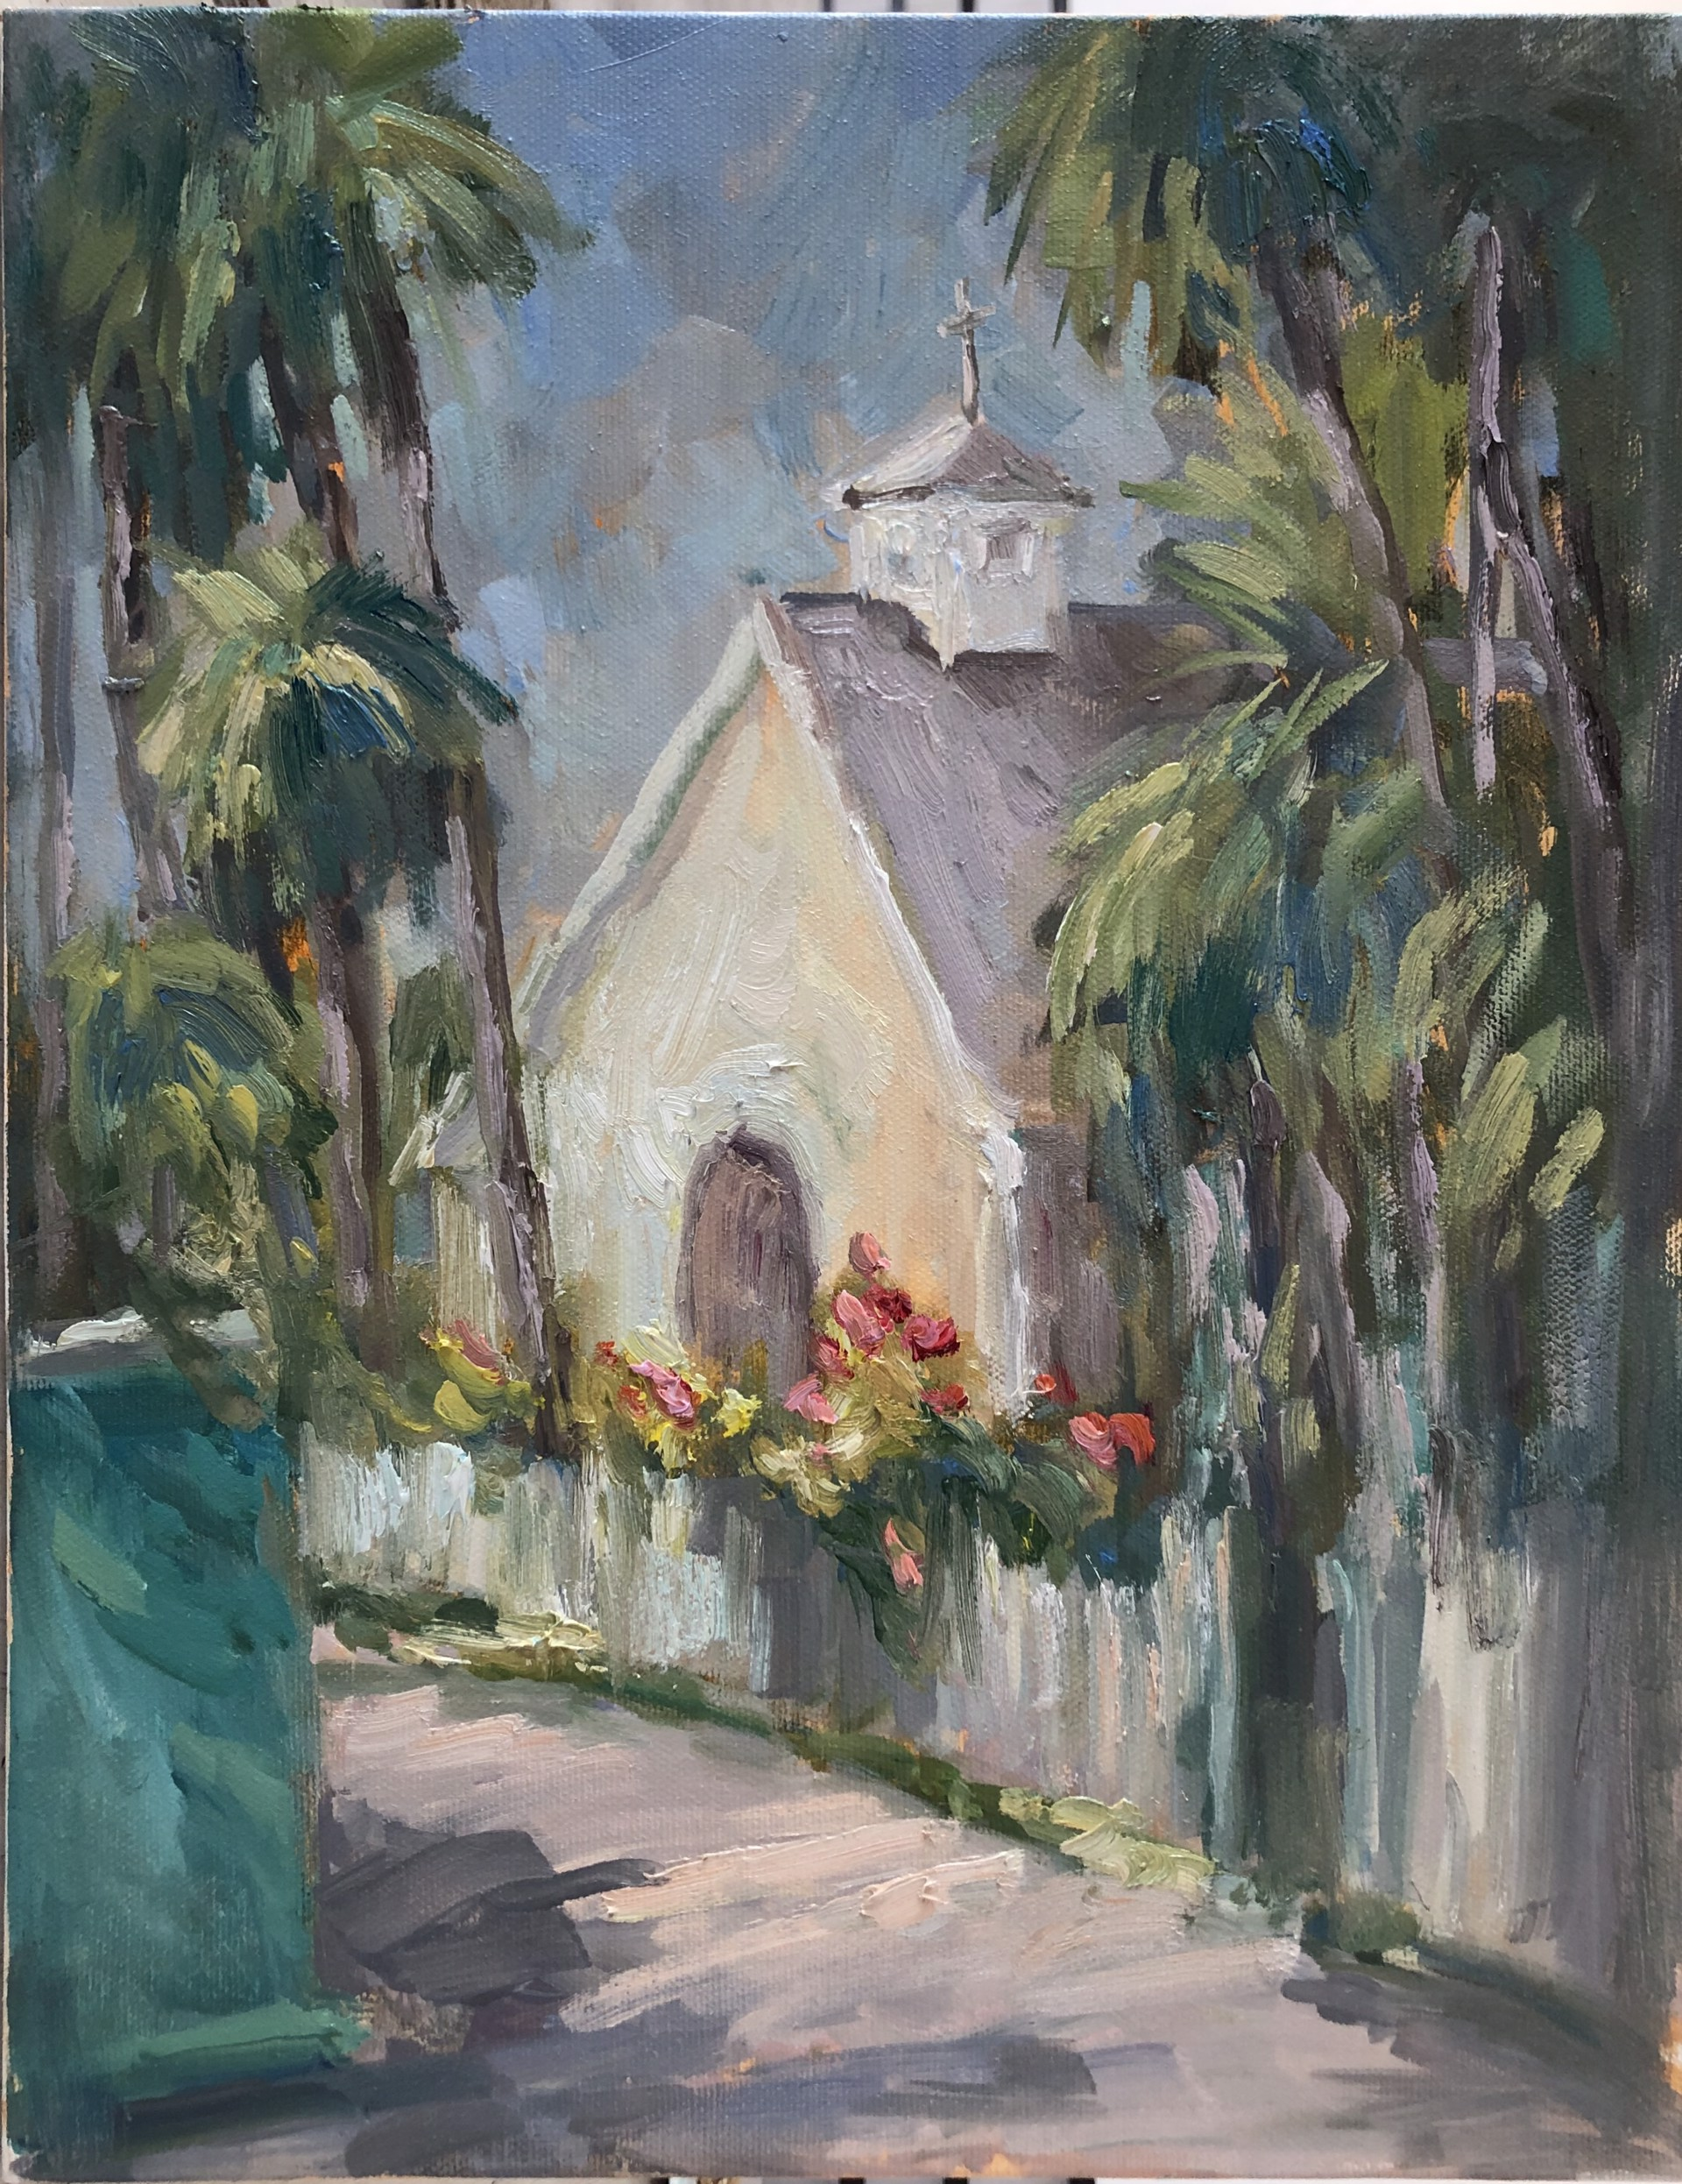 Sunday Morning in Hope Town (Abaco) by Karen Hewitt Hagan